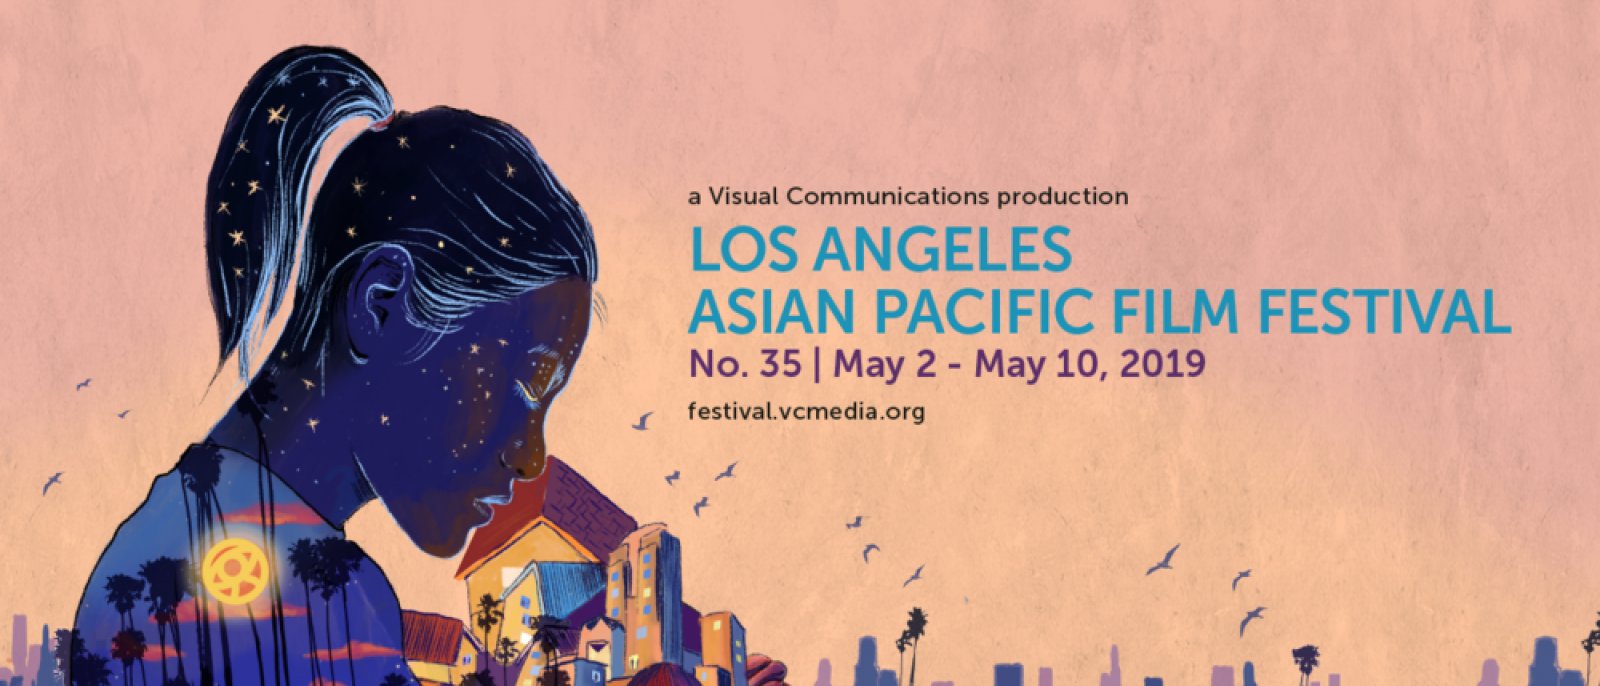 Los Angeles Asian Pacific Film Festival 2019